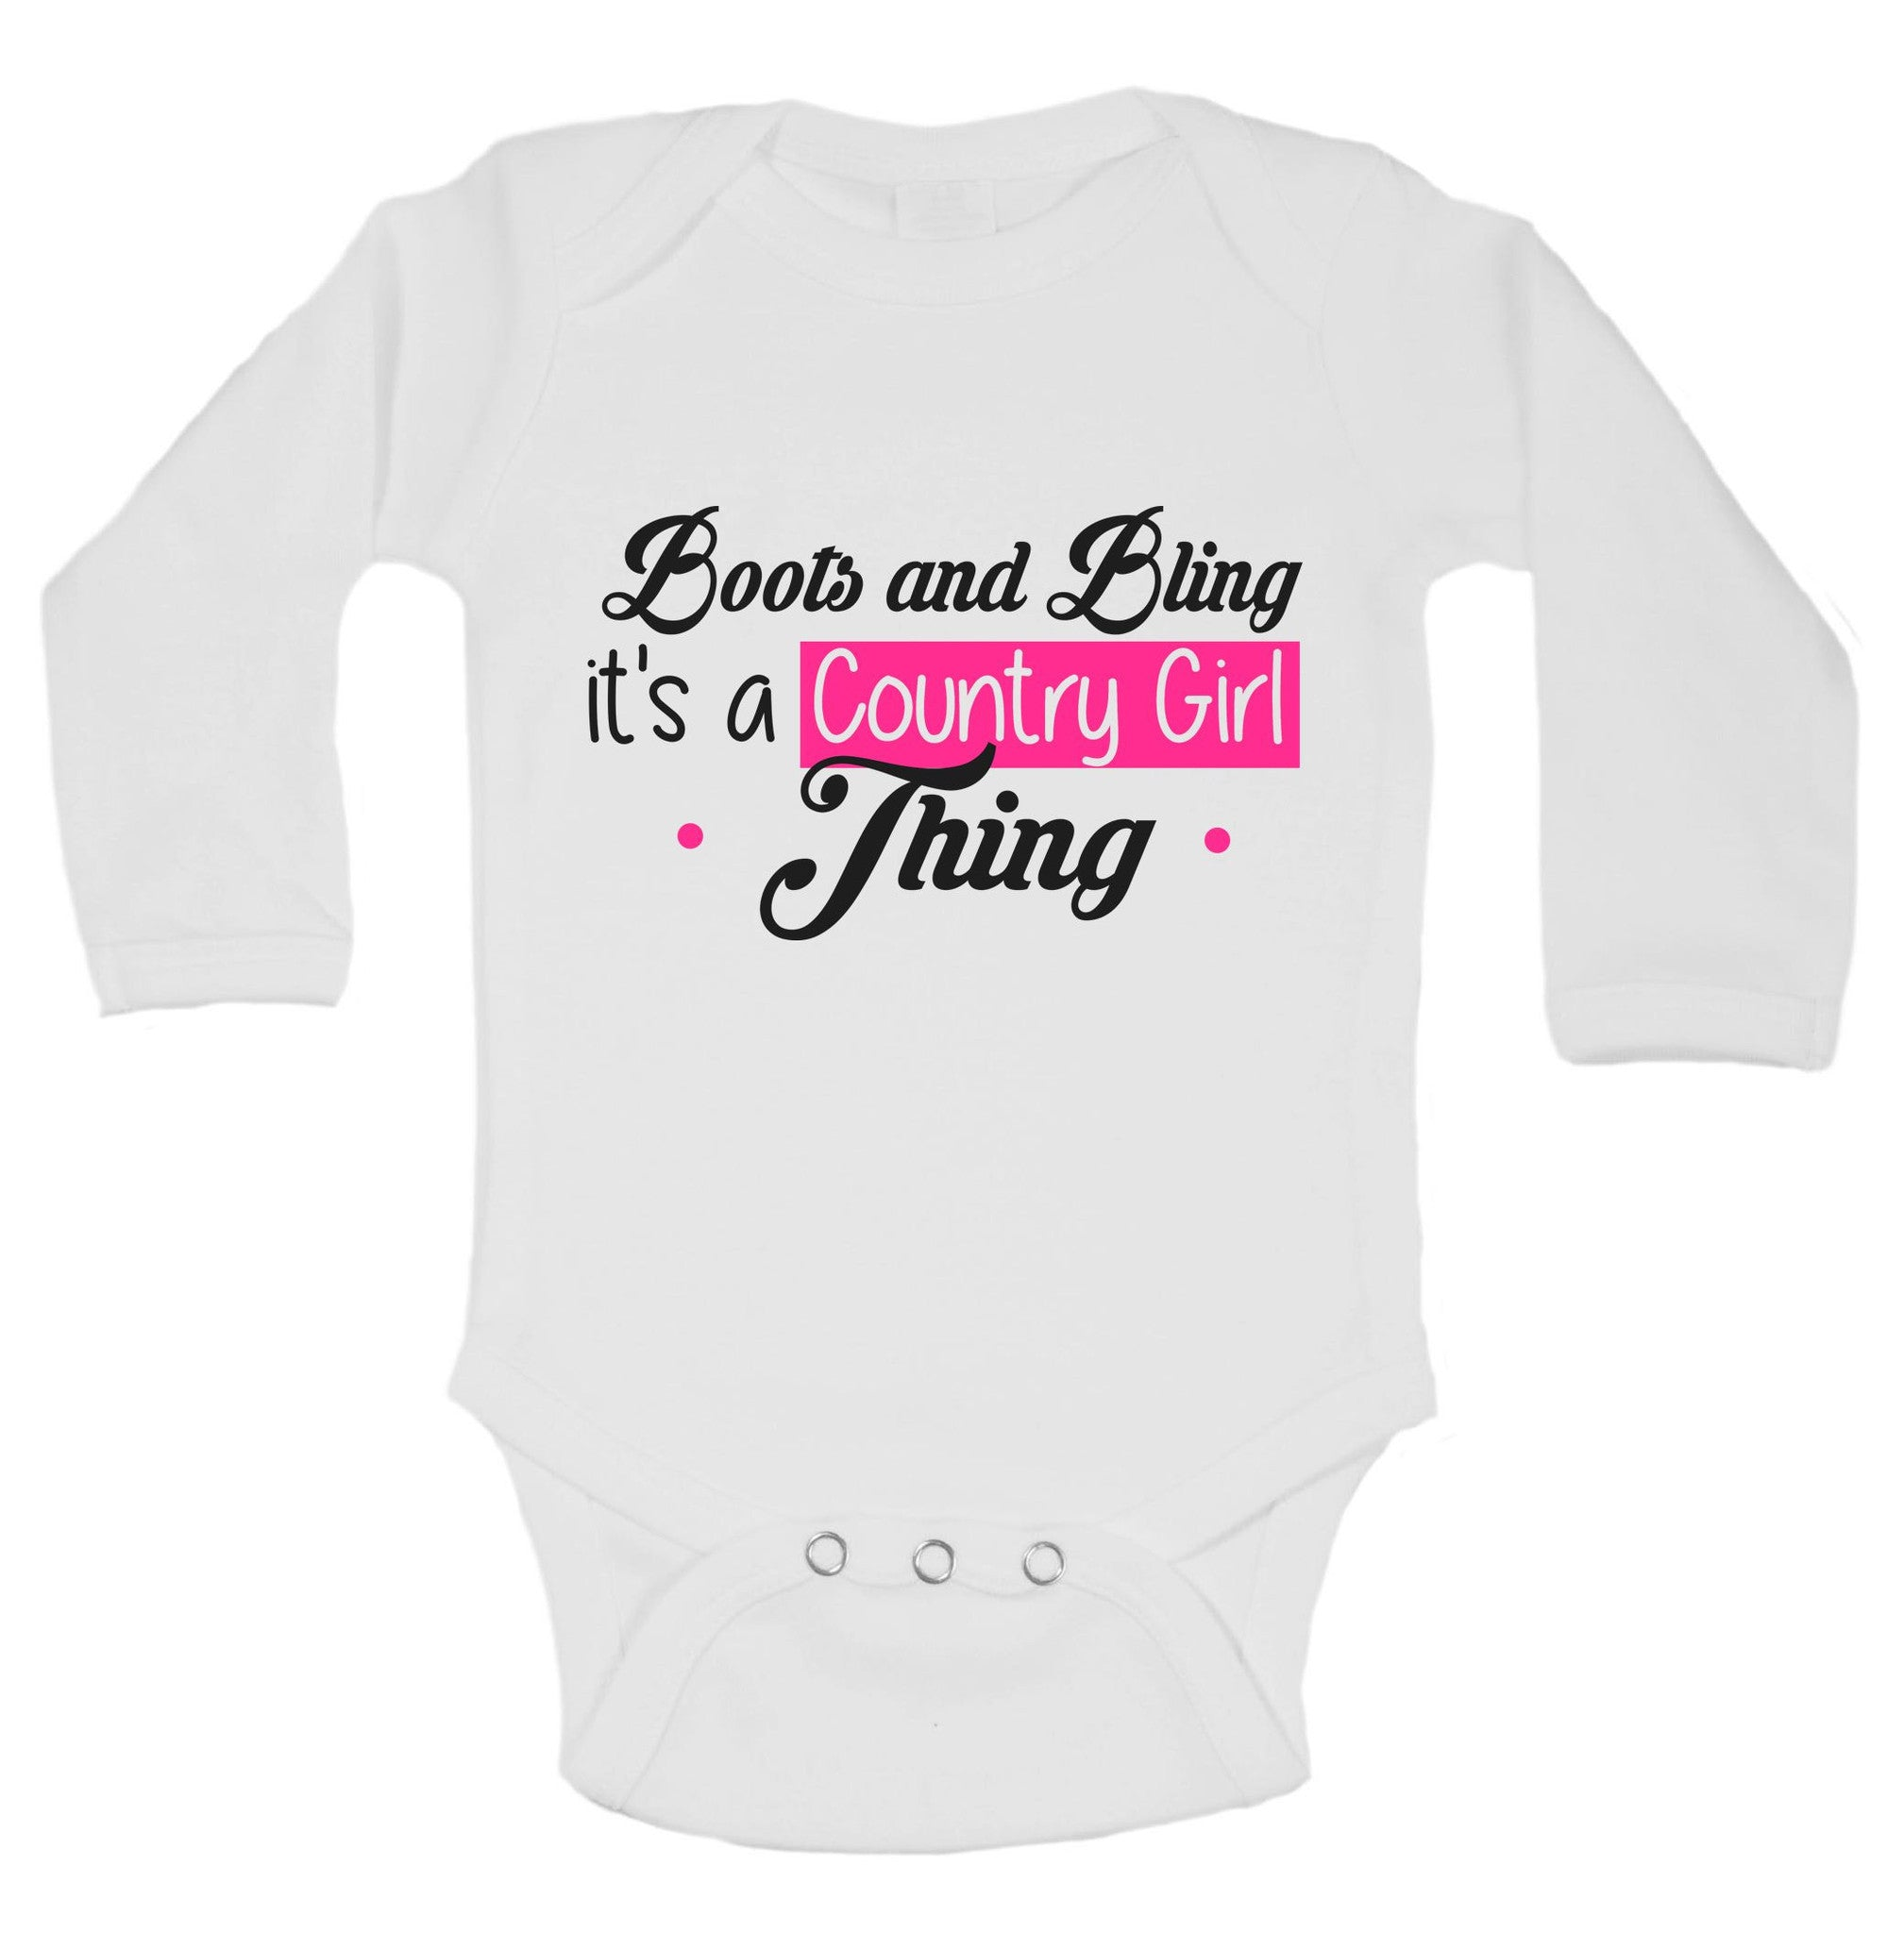 Boots And Bling It's A Country Girl Tring Funny Kids Onesie - B210 - Funny Shirts Tank Tops Burnouts and Triblends  - 1